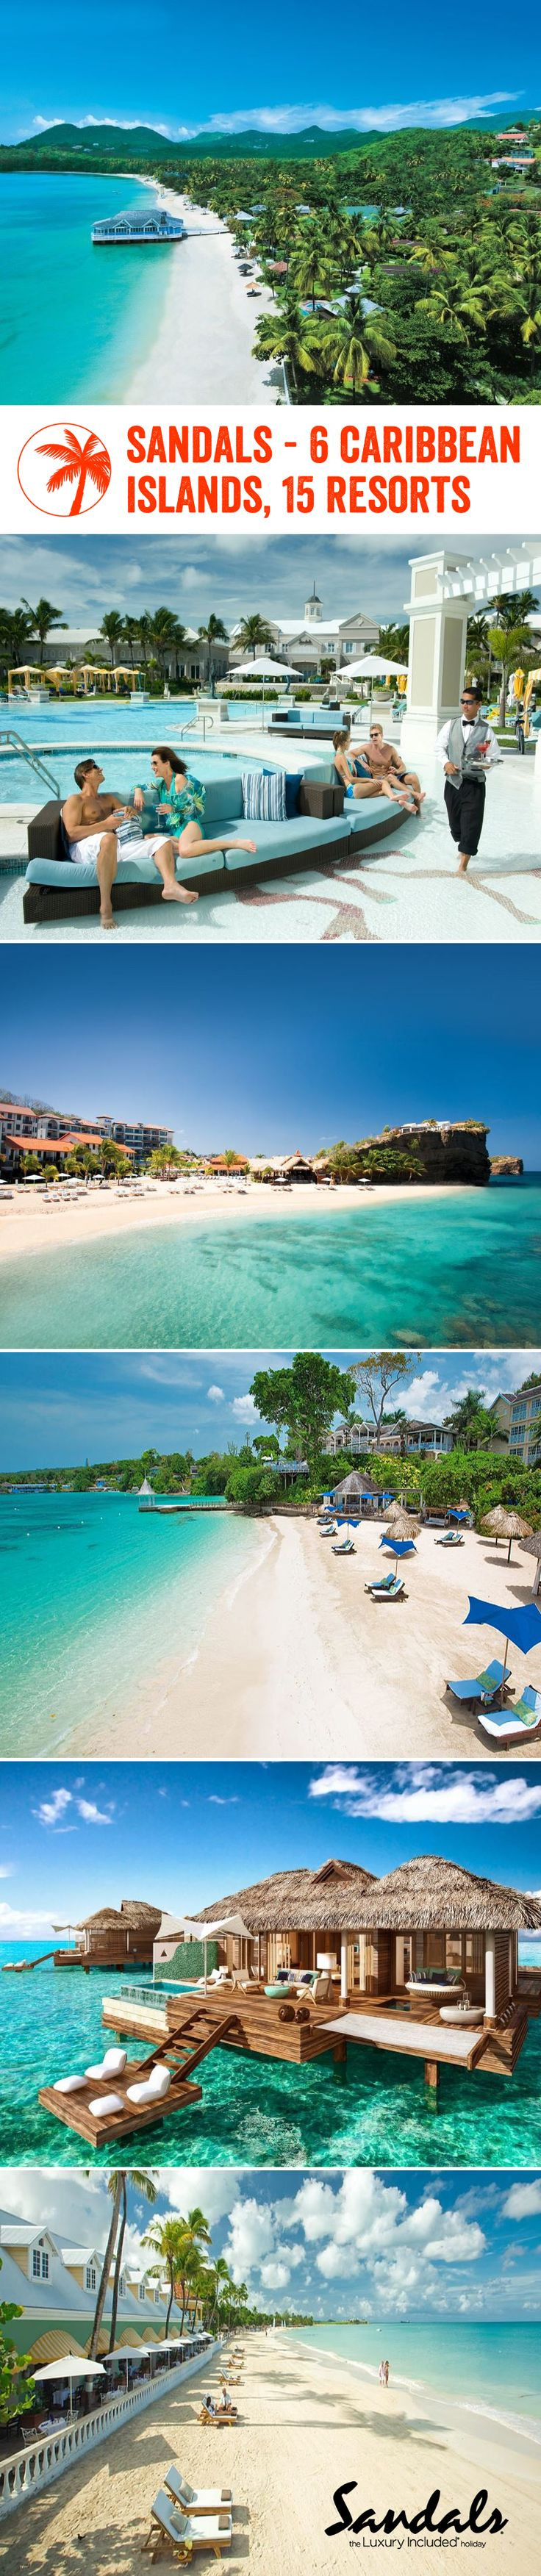 Personal butlers, beautiful beachfront locations and exciting activities - Sandals really has it all. Better yet, there are 15 resorts to choose from, so you'll be sure to find the perfect one for you